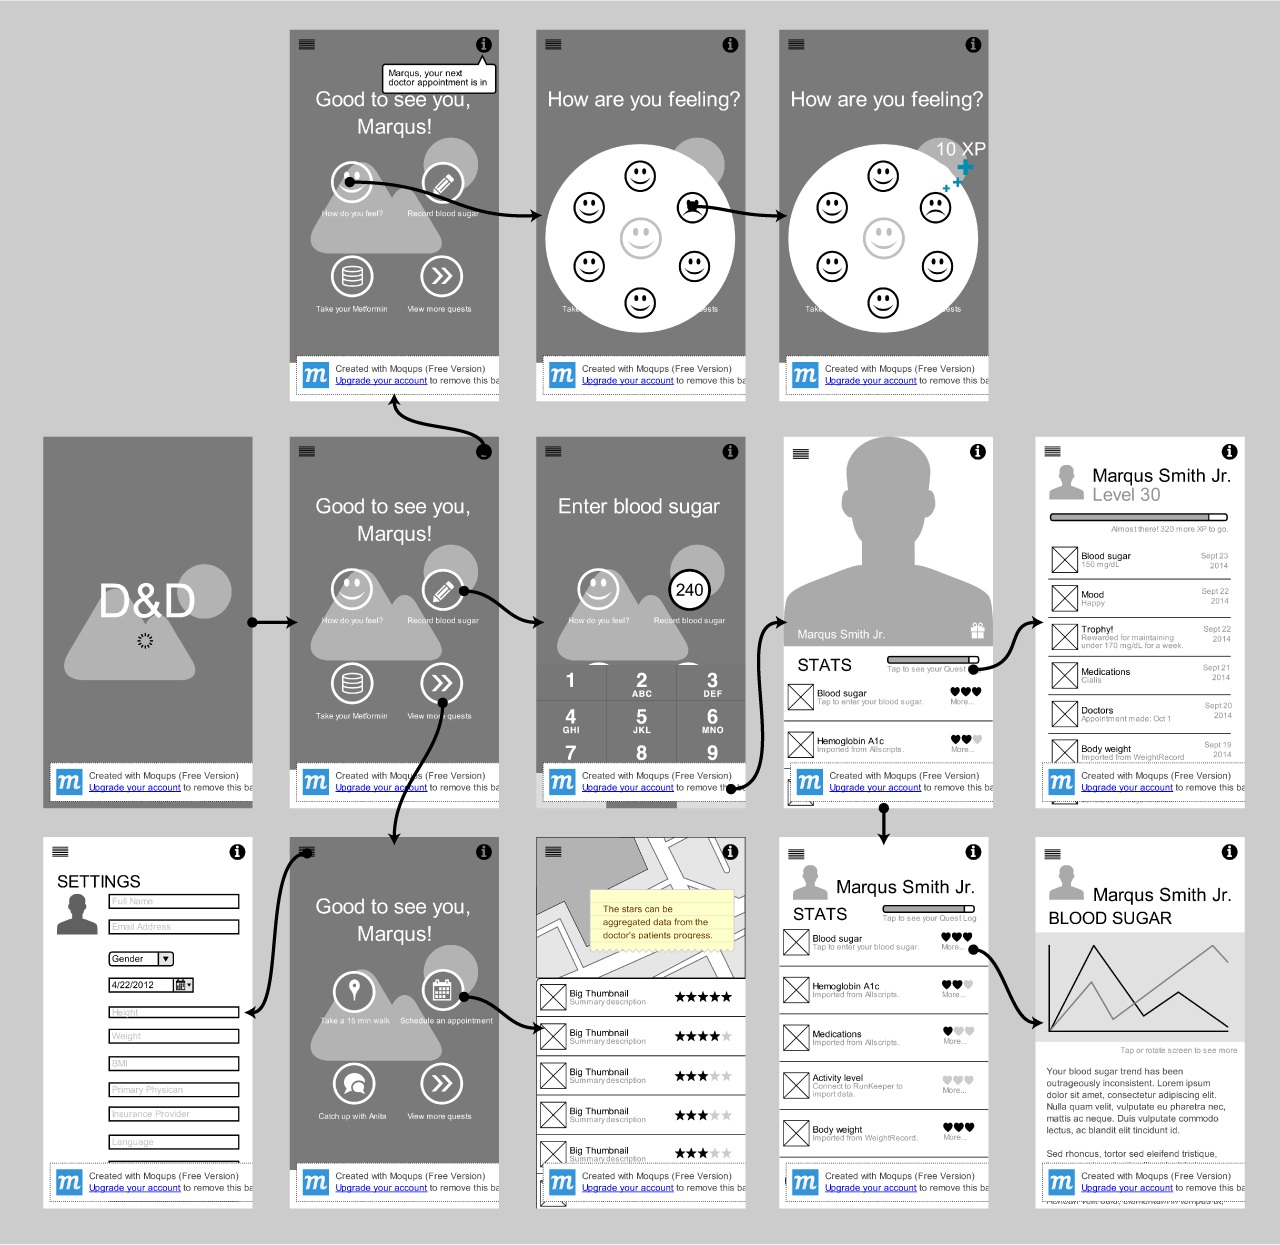 Wireframes for the mobile app design